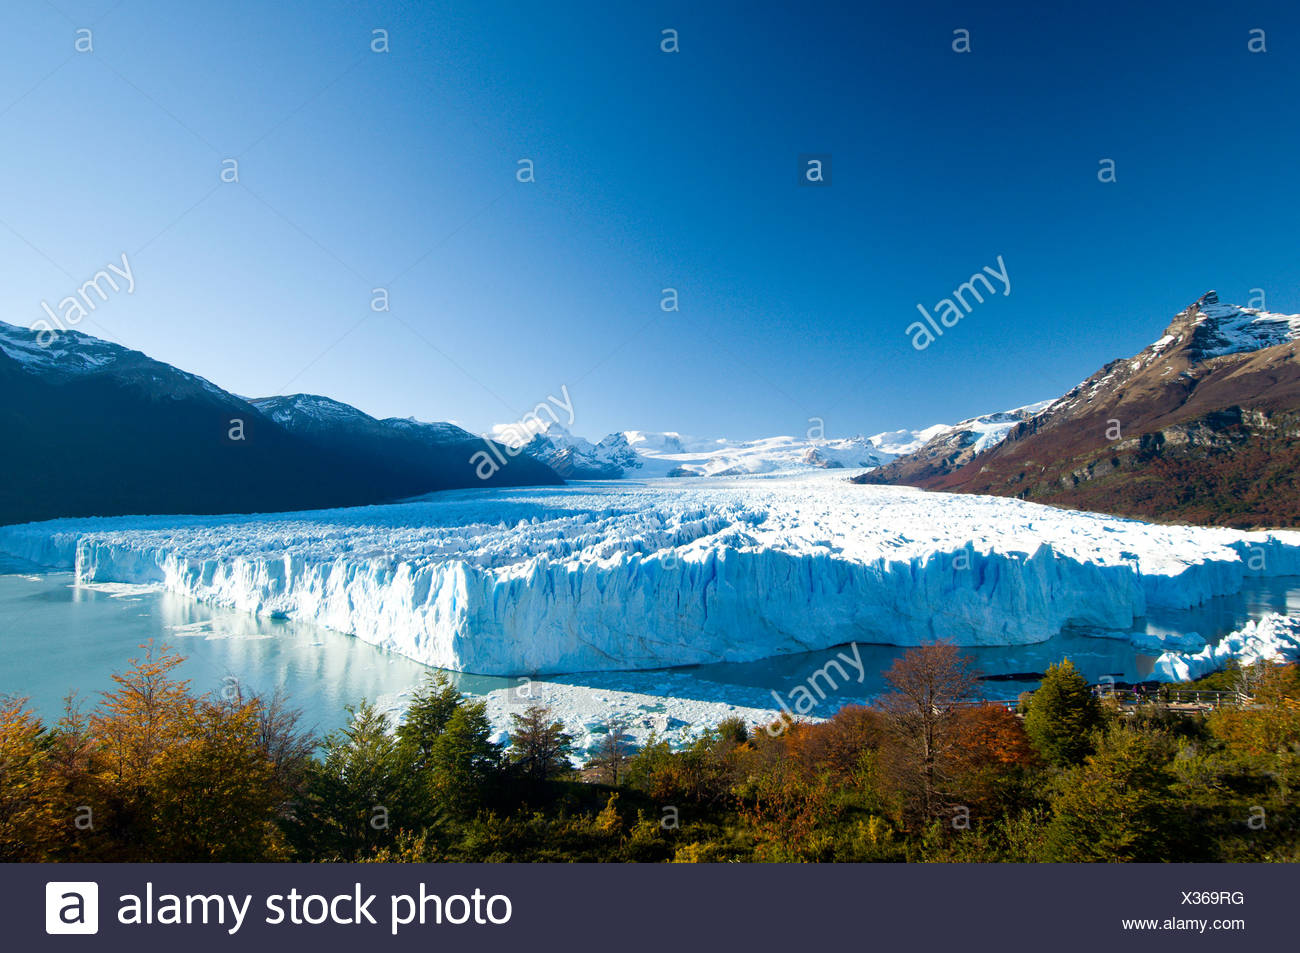 The Perito Moreno Glacier in autumn, calves into the waters of Lago Argentina, Parque Nacional Los Glacieres, Argentina - Stock Image